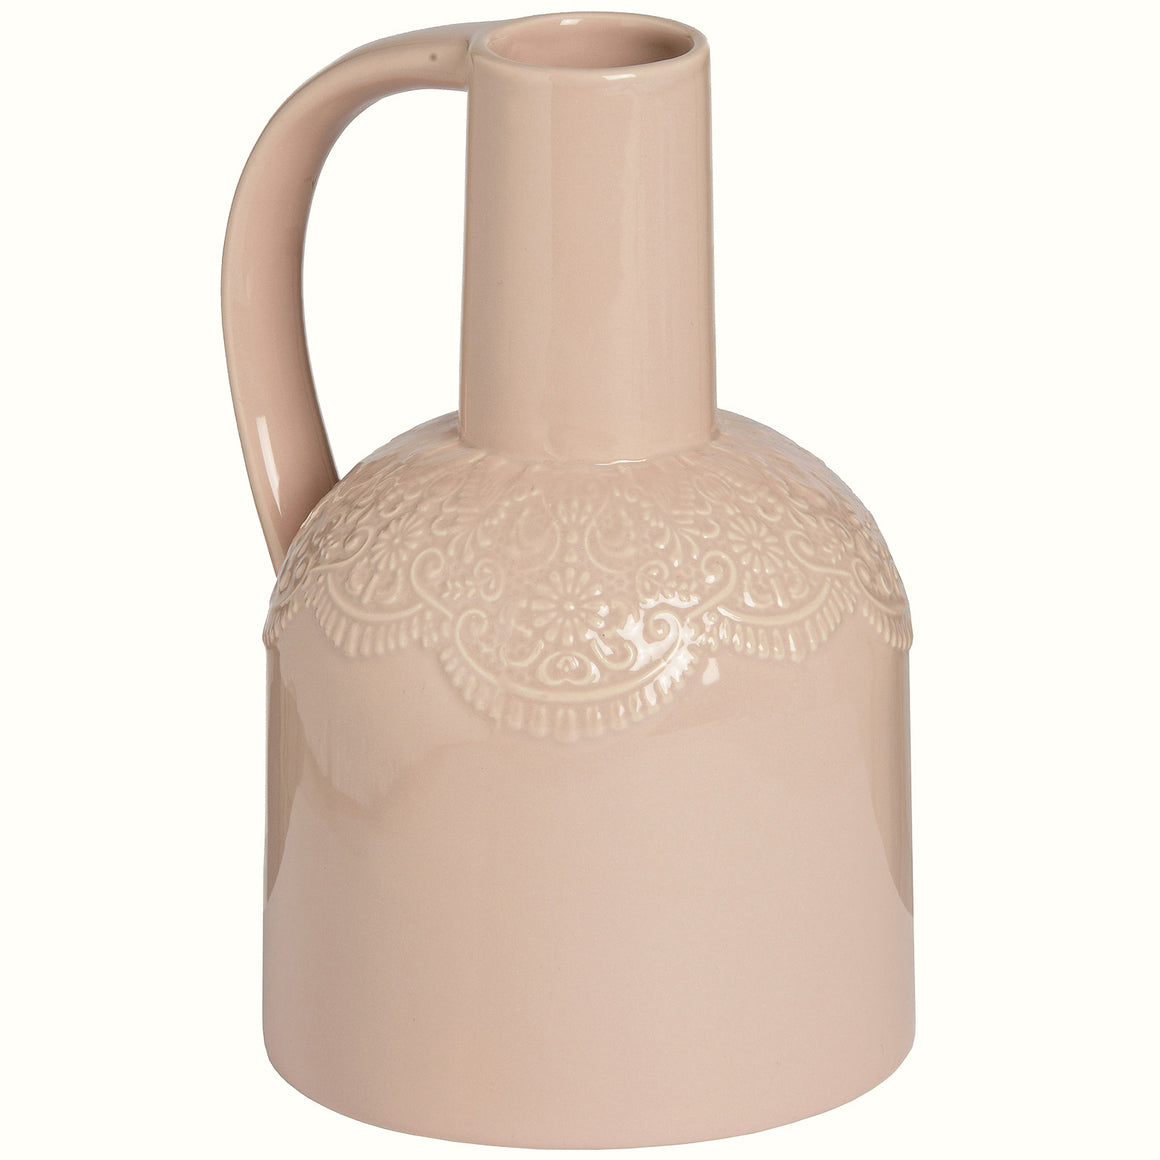 PINK CERAMIC LACE JUG